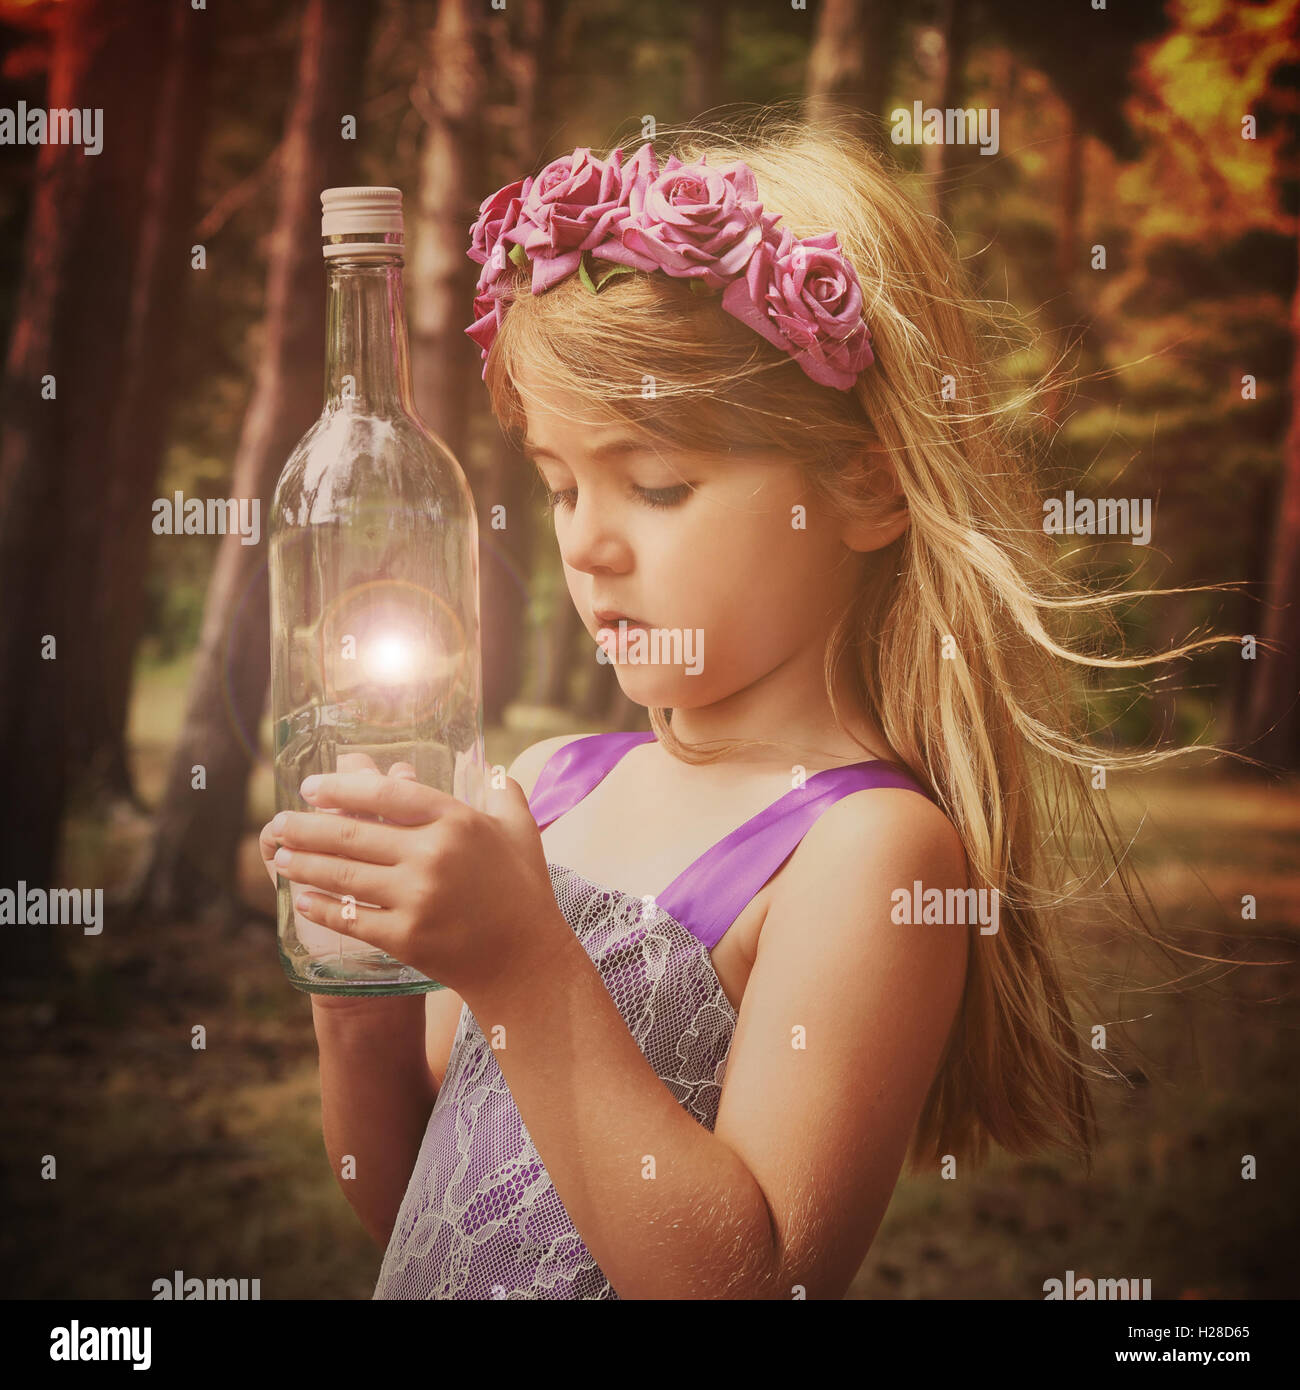 A little fairy girl is in the woods with looking at a magical bottle for an imagination or fantasy concept. - Stock Image